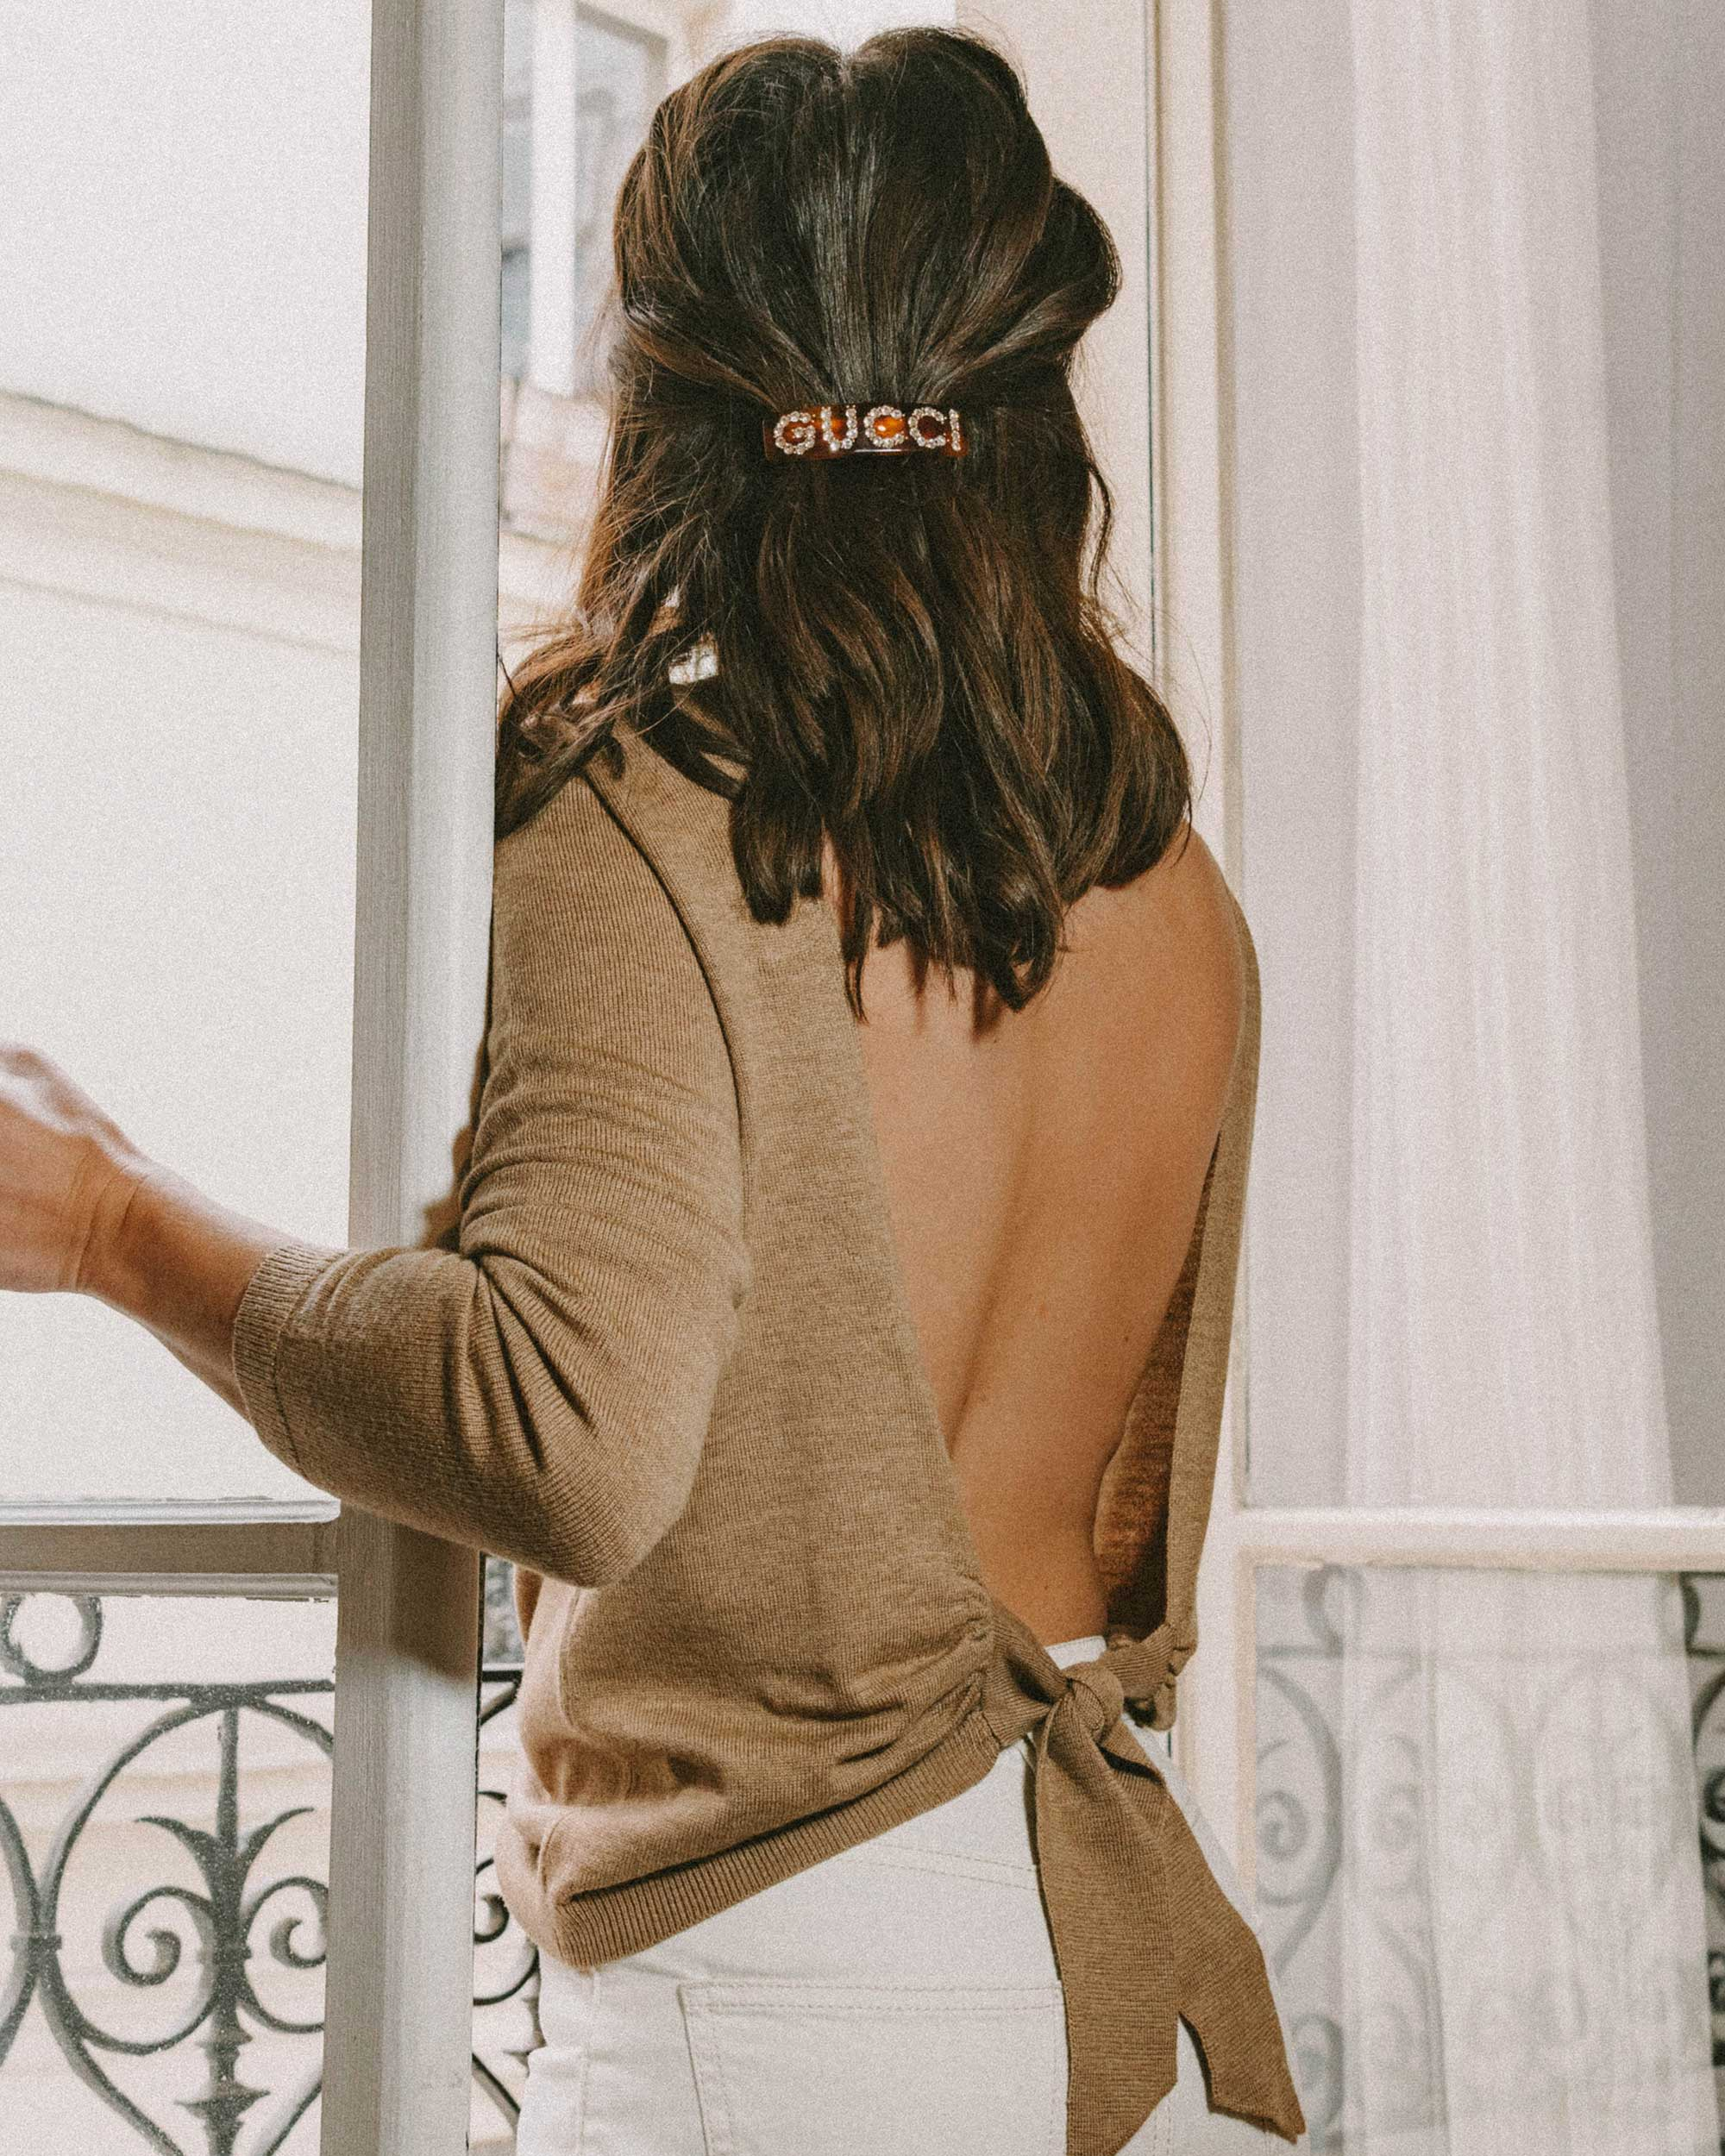 Sarah Butler of Sarah Styles Seattle wears Sezane Backless Sweater and Crystal Gucci single hair barrette in Paris, France | @sarahchristine, Seattle Blogger.jpg